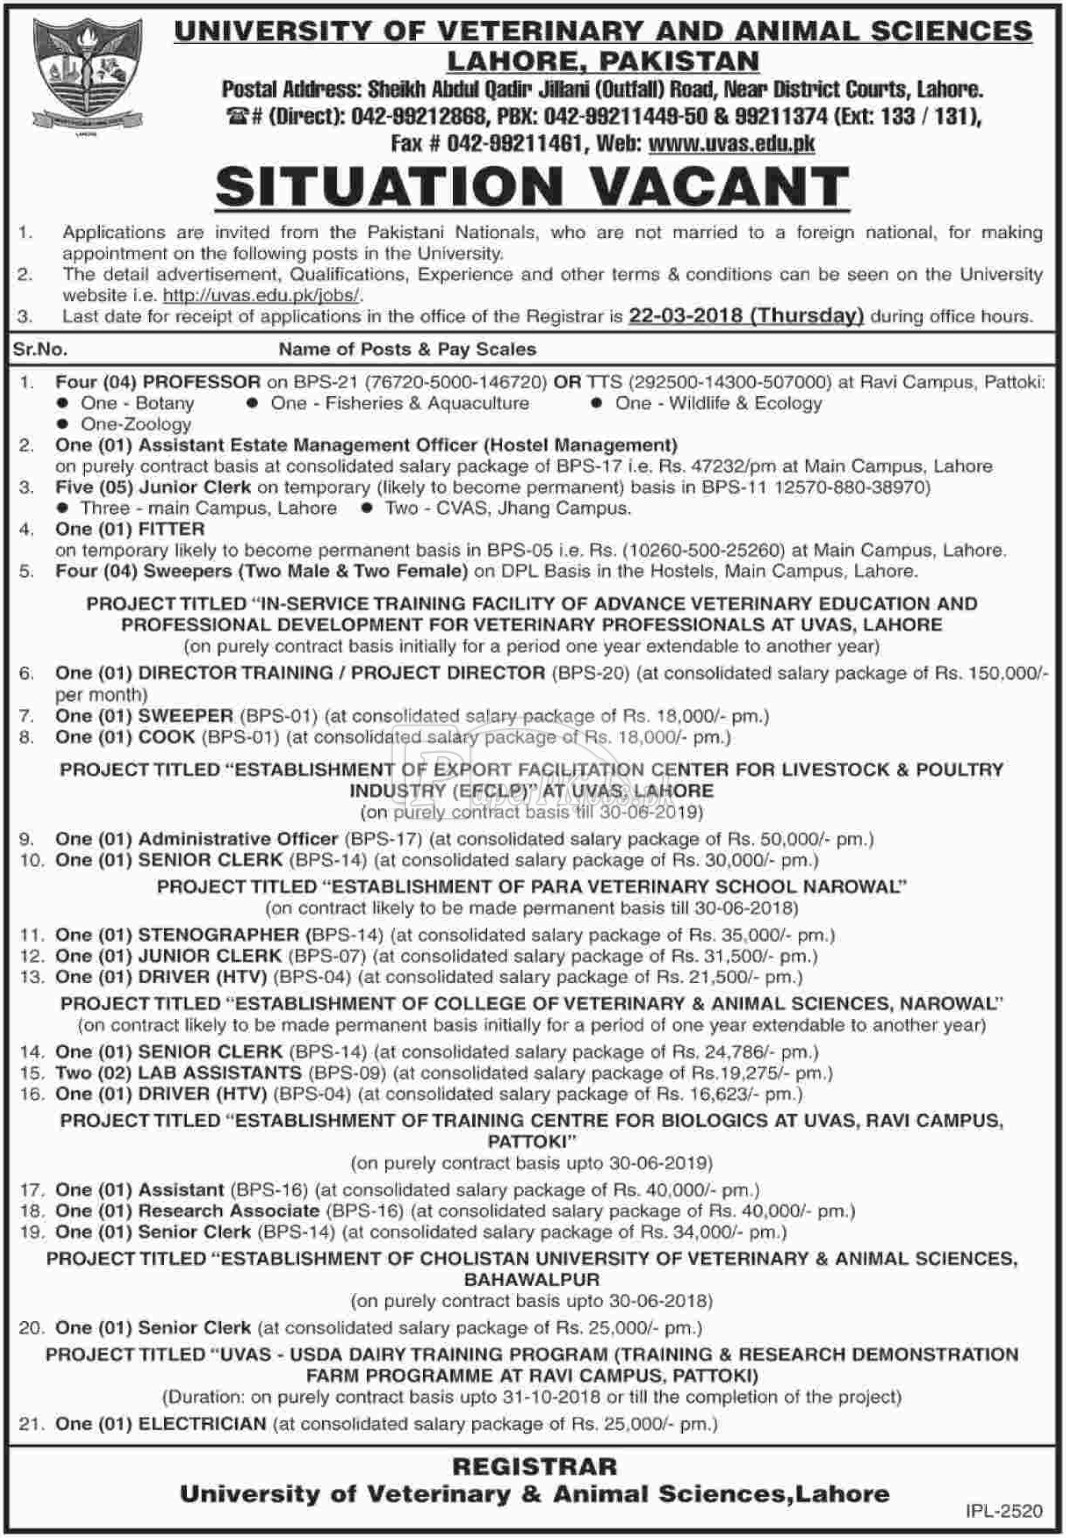 University of Veterinary & Animal Sciences UVAS Lahore Jobs 2018